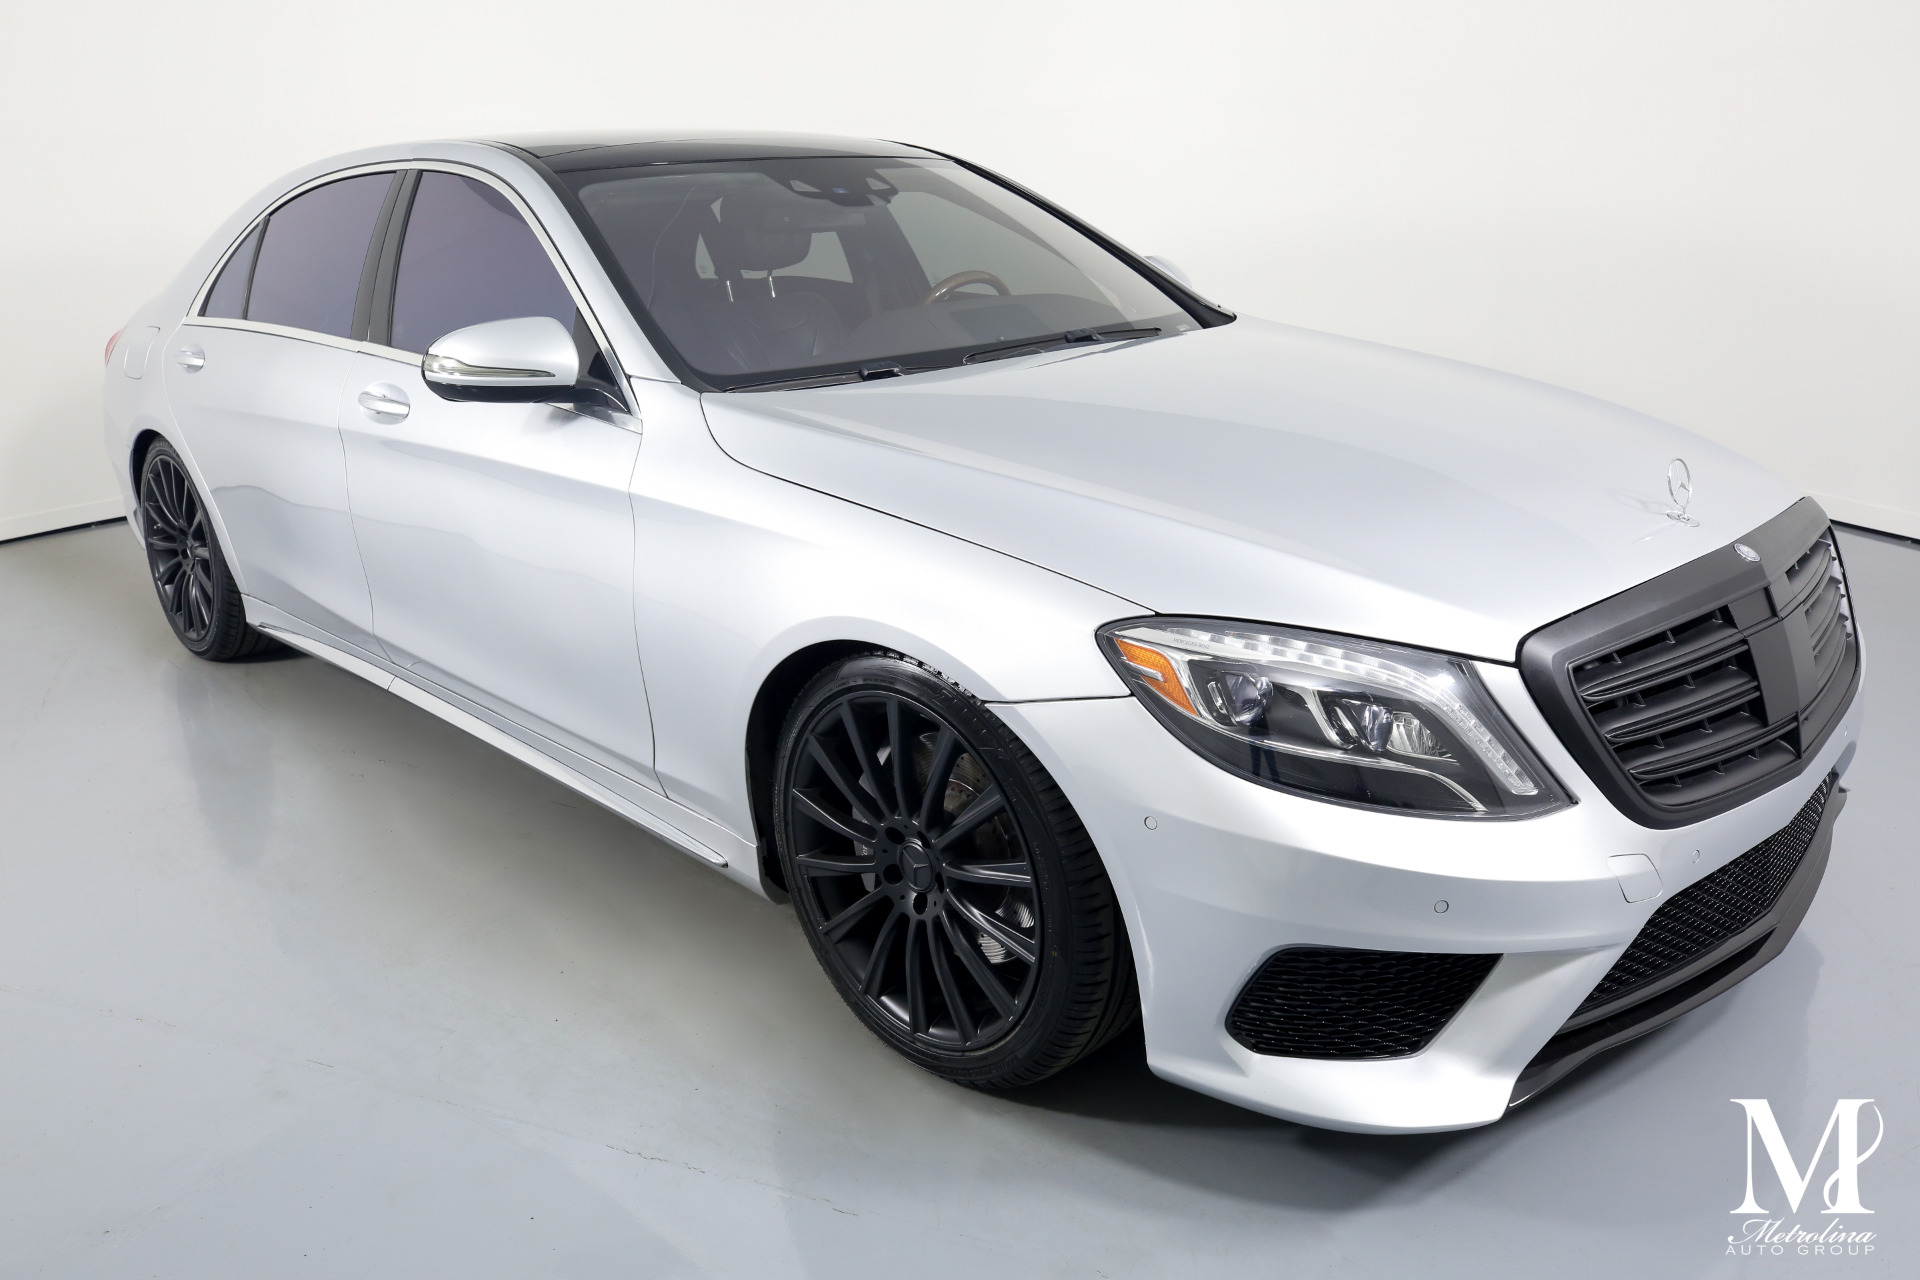 Used 2014 Mercedes-Benz S-Class S 550 for sale $39,996 at Metrolina Auto Group in Charlotte NC 28217 - 2